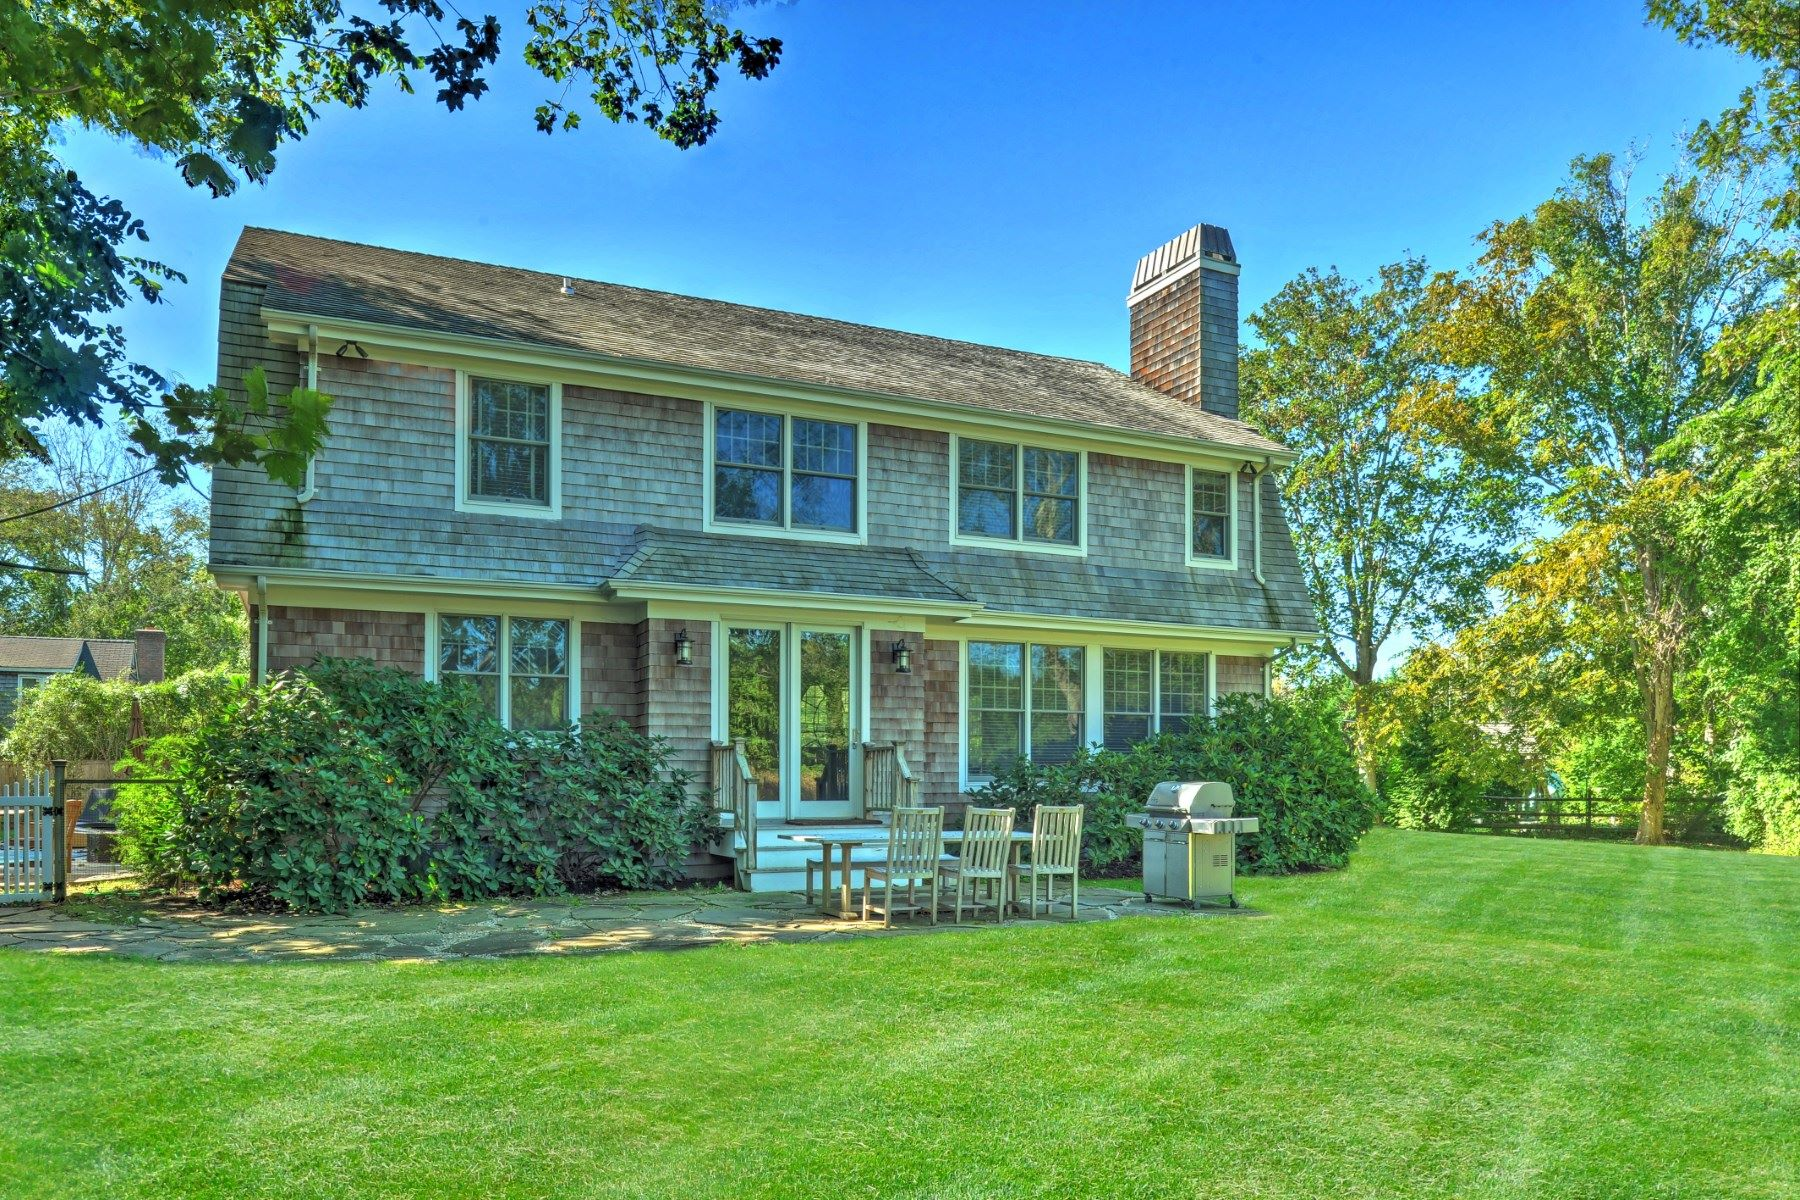 Single Family Home for Rent at Village Traditional Overlooking Reserve 121 Pantigo Road (Deep Flag Lot) East Hampton, New York 11937 United States